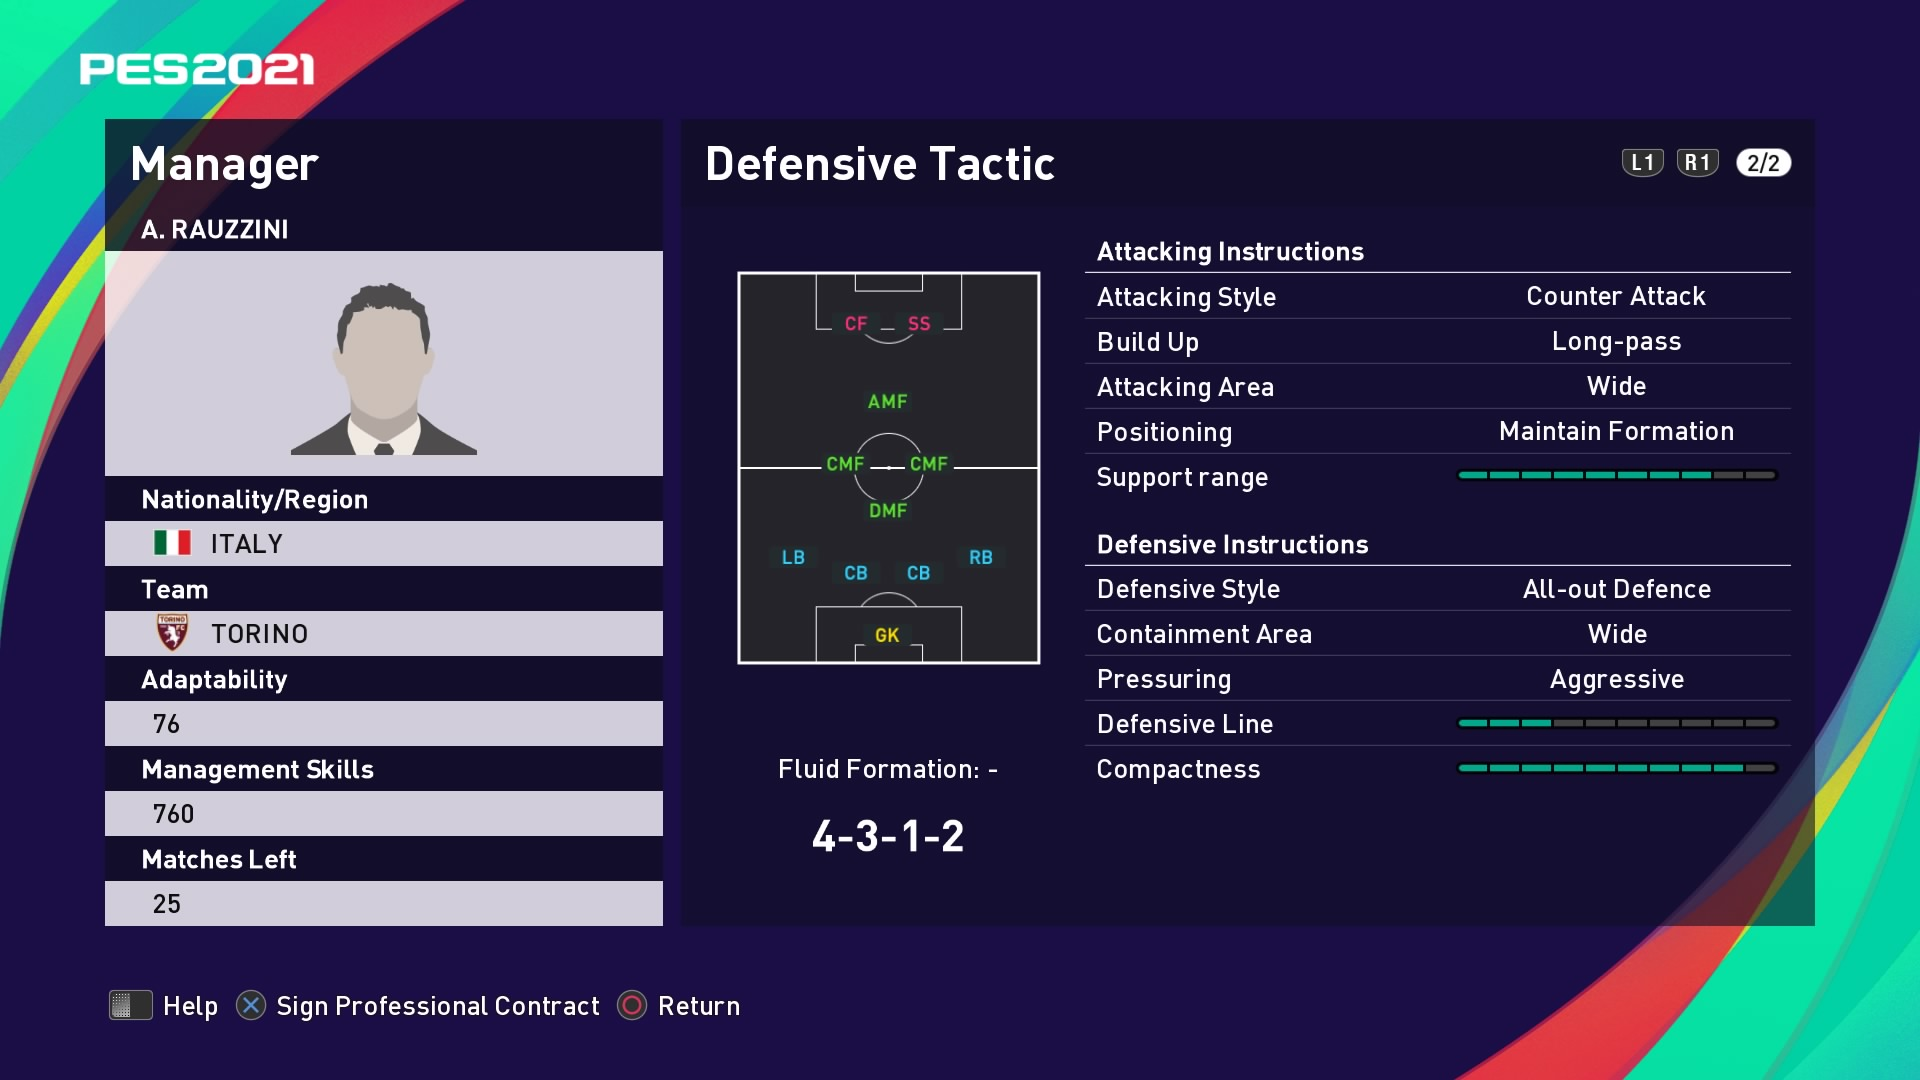 A. Rauzzini (2) (Marco Giampaolo) Defensive Tactic in PES 2021 myClub